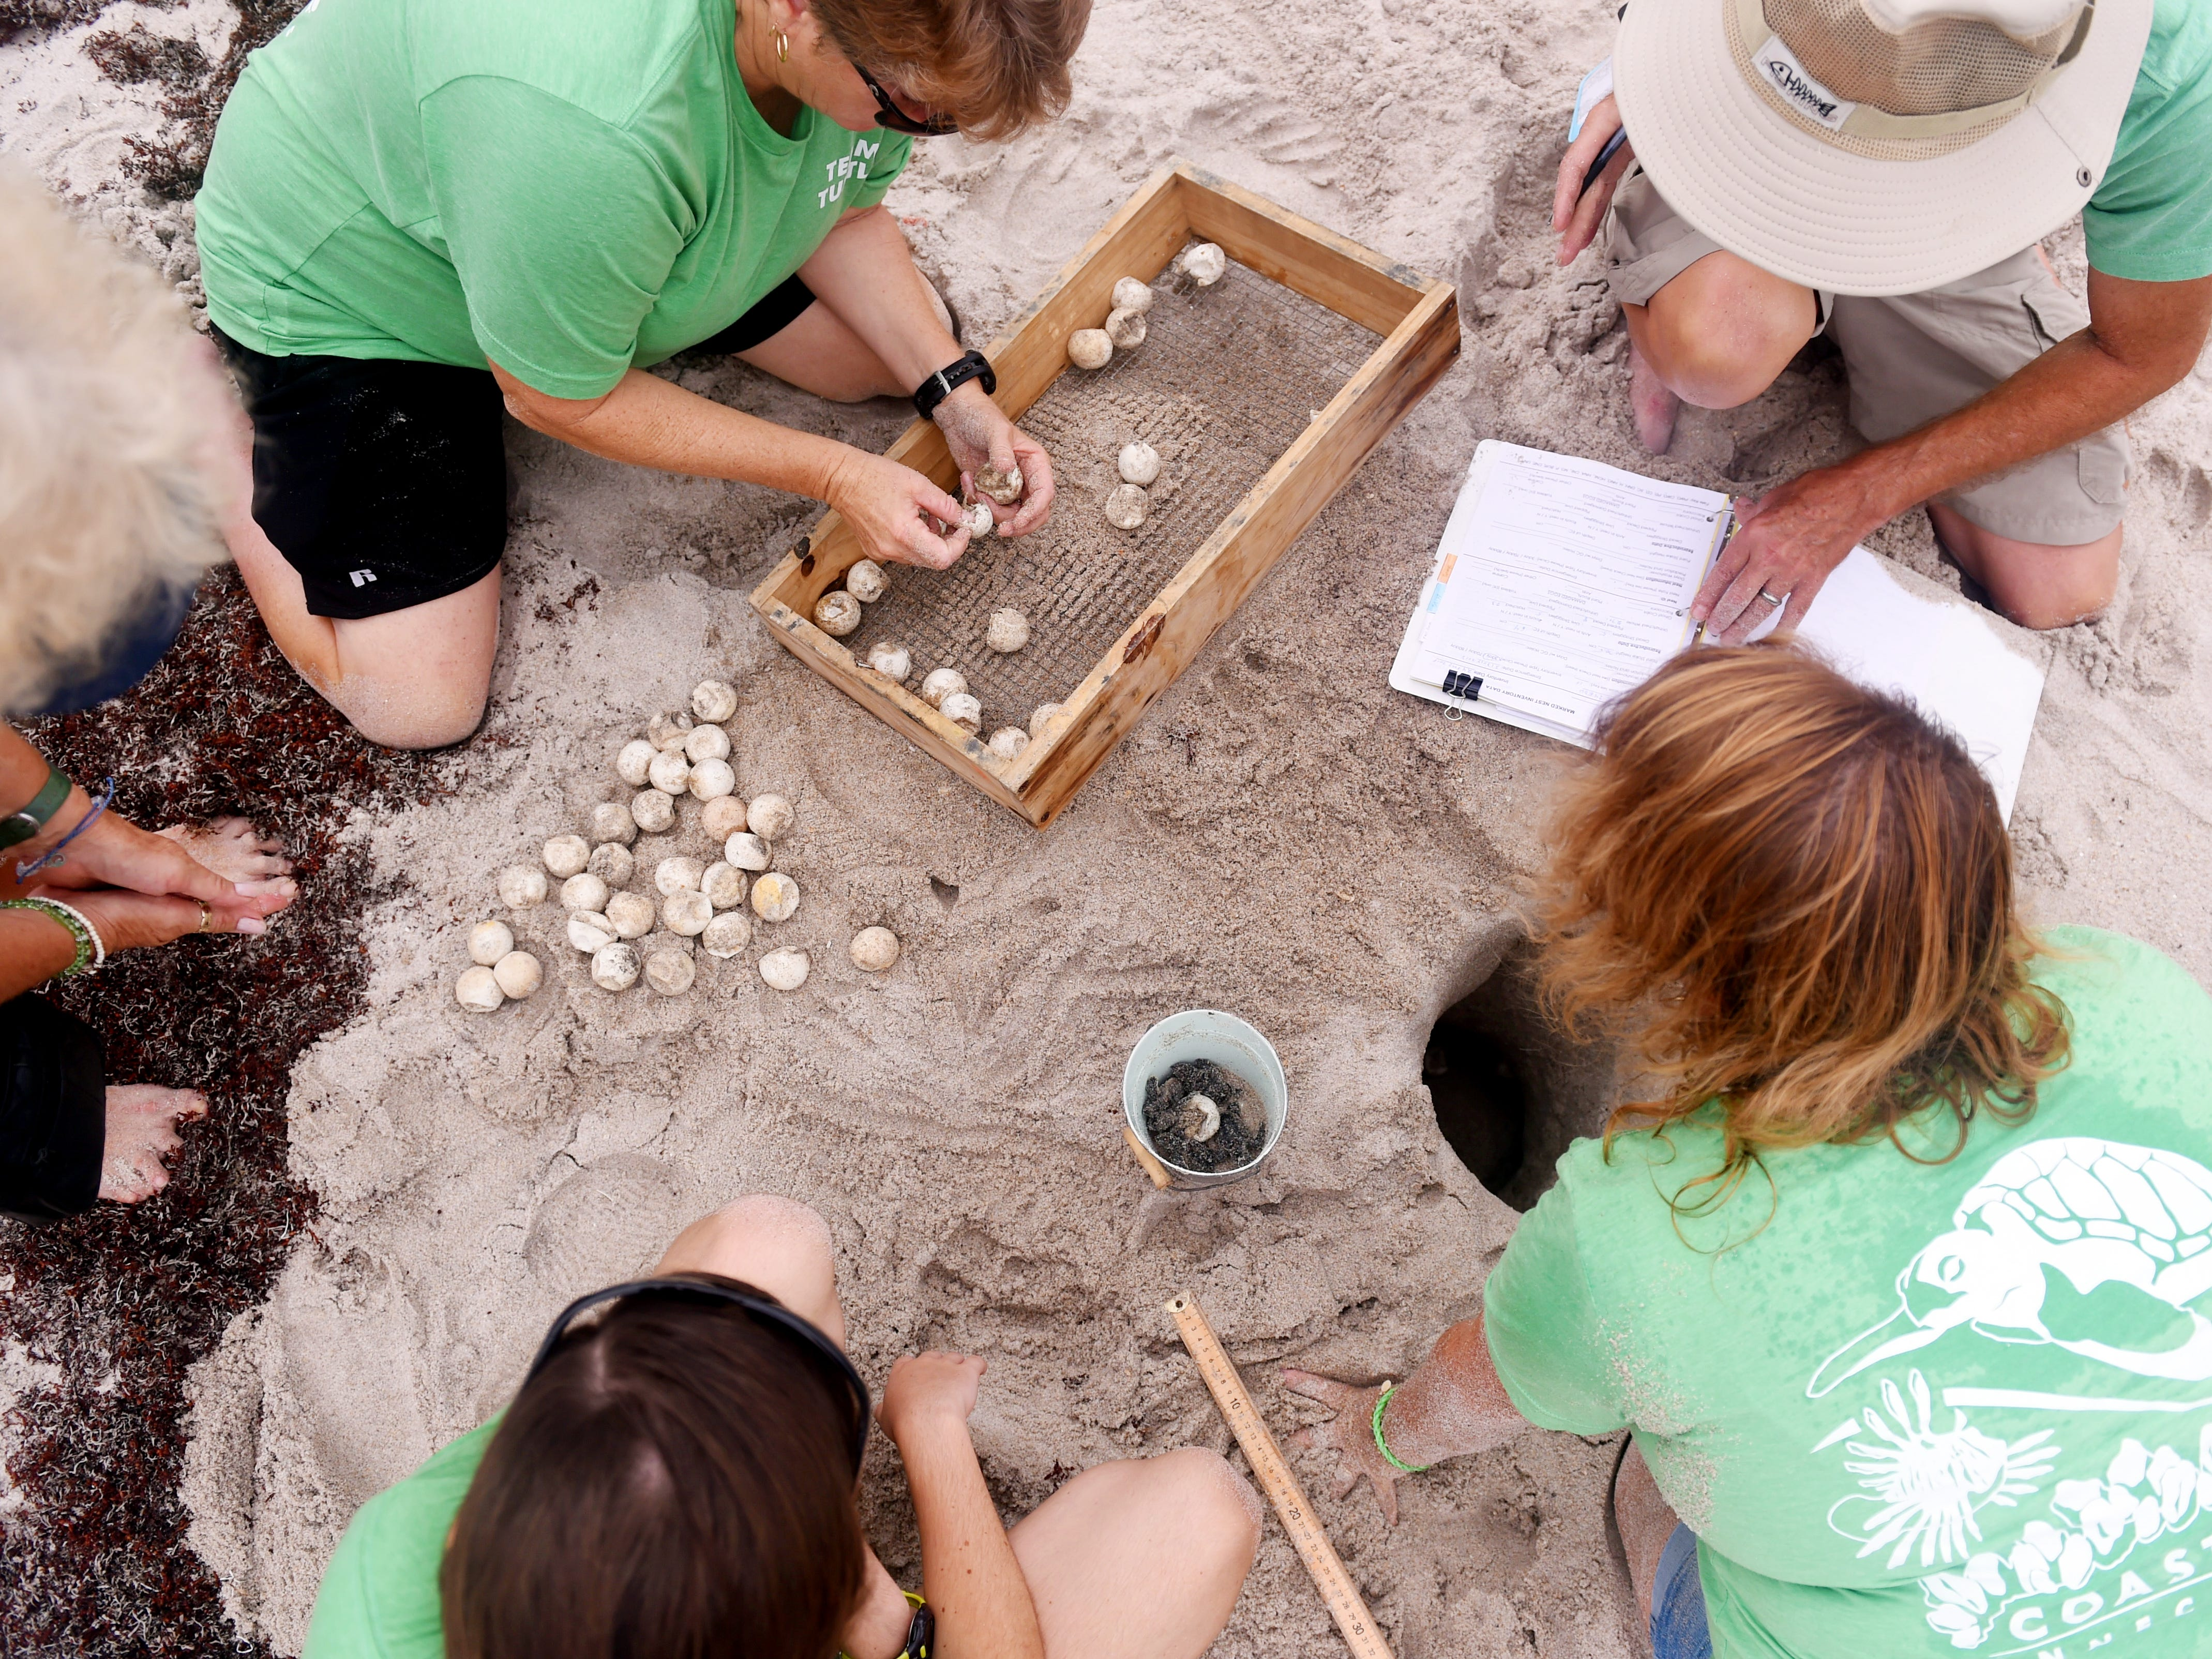 """Coastal Connections vice president Sherri Davis (clockwise from top left) and volunteers David Cranton, Celeste McWilliams and Cori McWilliams take a survey of a recently hatched loggerhead turtle nest during a turtle dig, a public nest excavation, Tuesday, July 24, 2018 to determine how many eggs were in the nest, how many hatched and to see if there are any turtles that need to be rescued that didn't make it out of the nest near Sexton Plaza in Vero Beach. """"This is an educational opportunity to allow guests and residents of our area to feel more connected and learn about what we're doing on our beaches to protect our sea turtles,"""" said Kendra Cope, president of Coastal Connections. """"Three days after a nest hatches we have to evaluate that nest, we need to find out how successful it was. This gives us an opportunity to do this for the public and do a presentation about why we're doing this and teach others how they can protect turtles and make our beaches a better place for them to come and nest."""" Volunteers found four hatchlings in the nest and released them into the water in front of about 150 people."""